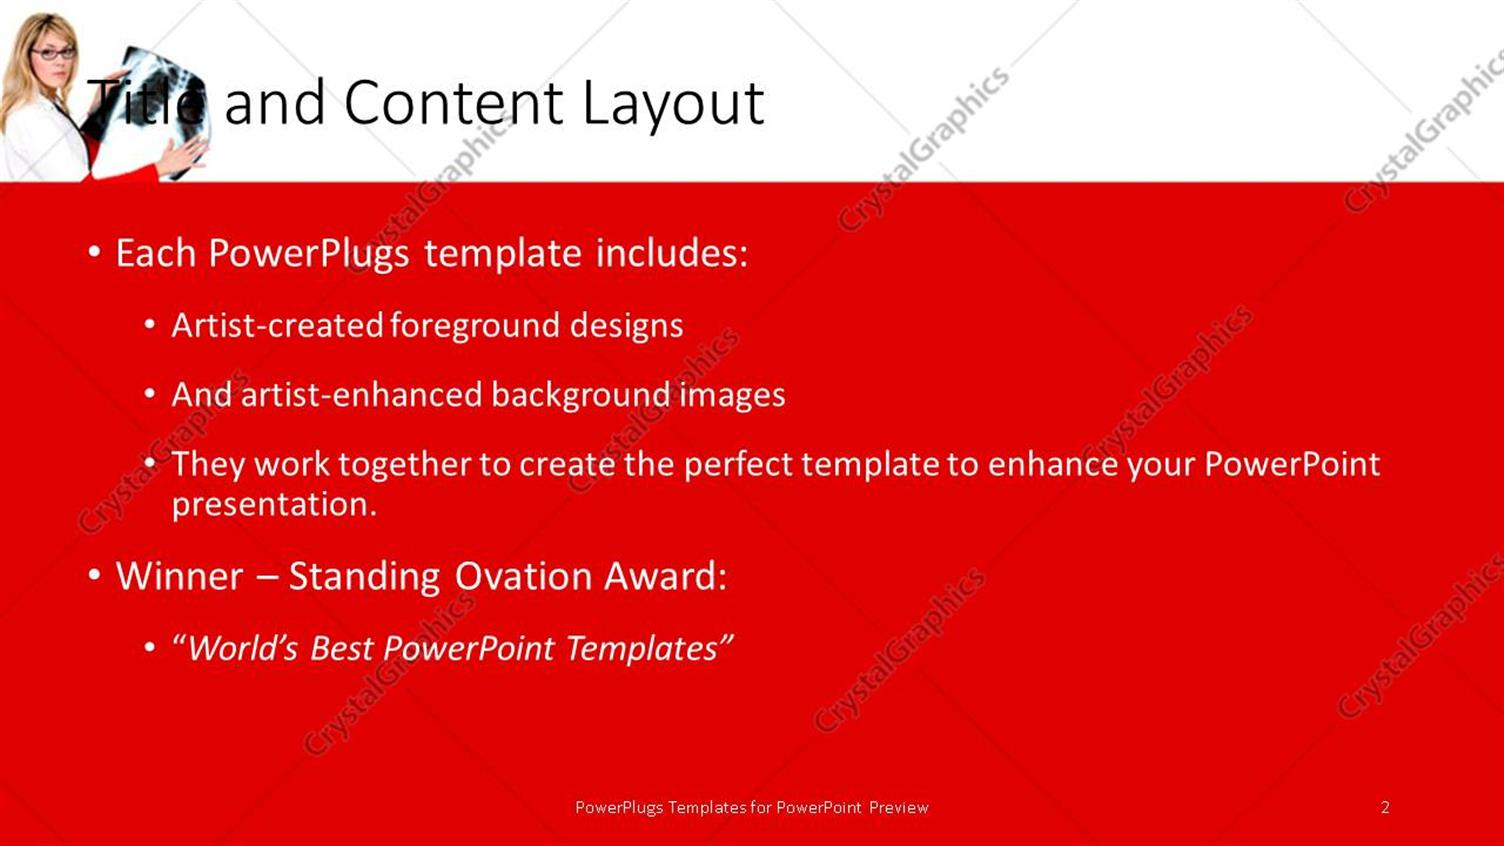 x ray powerpoint templates images - templates example free download, Modern powerpoint